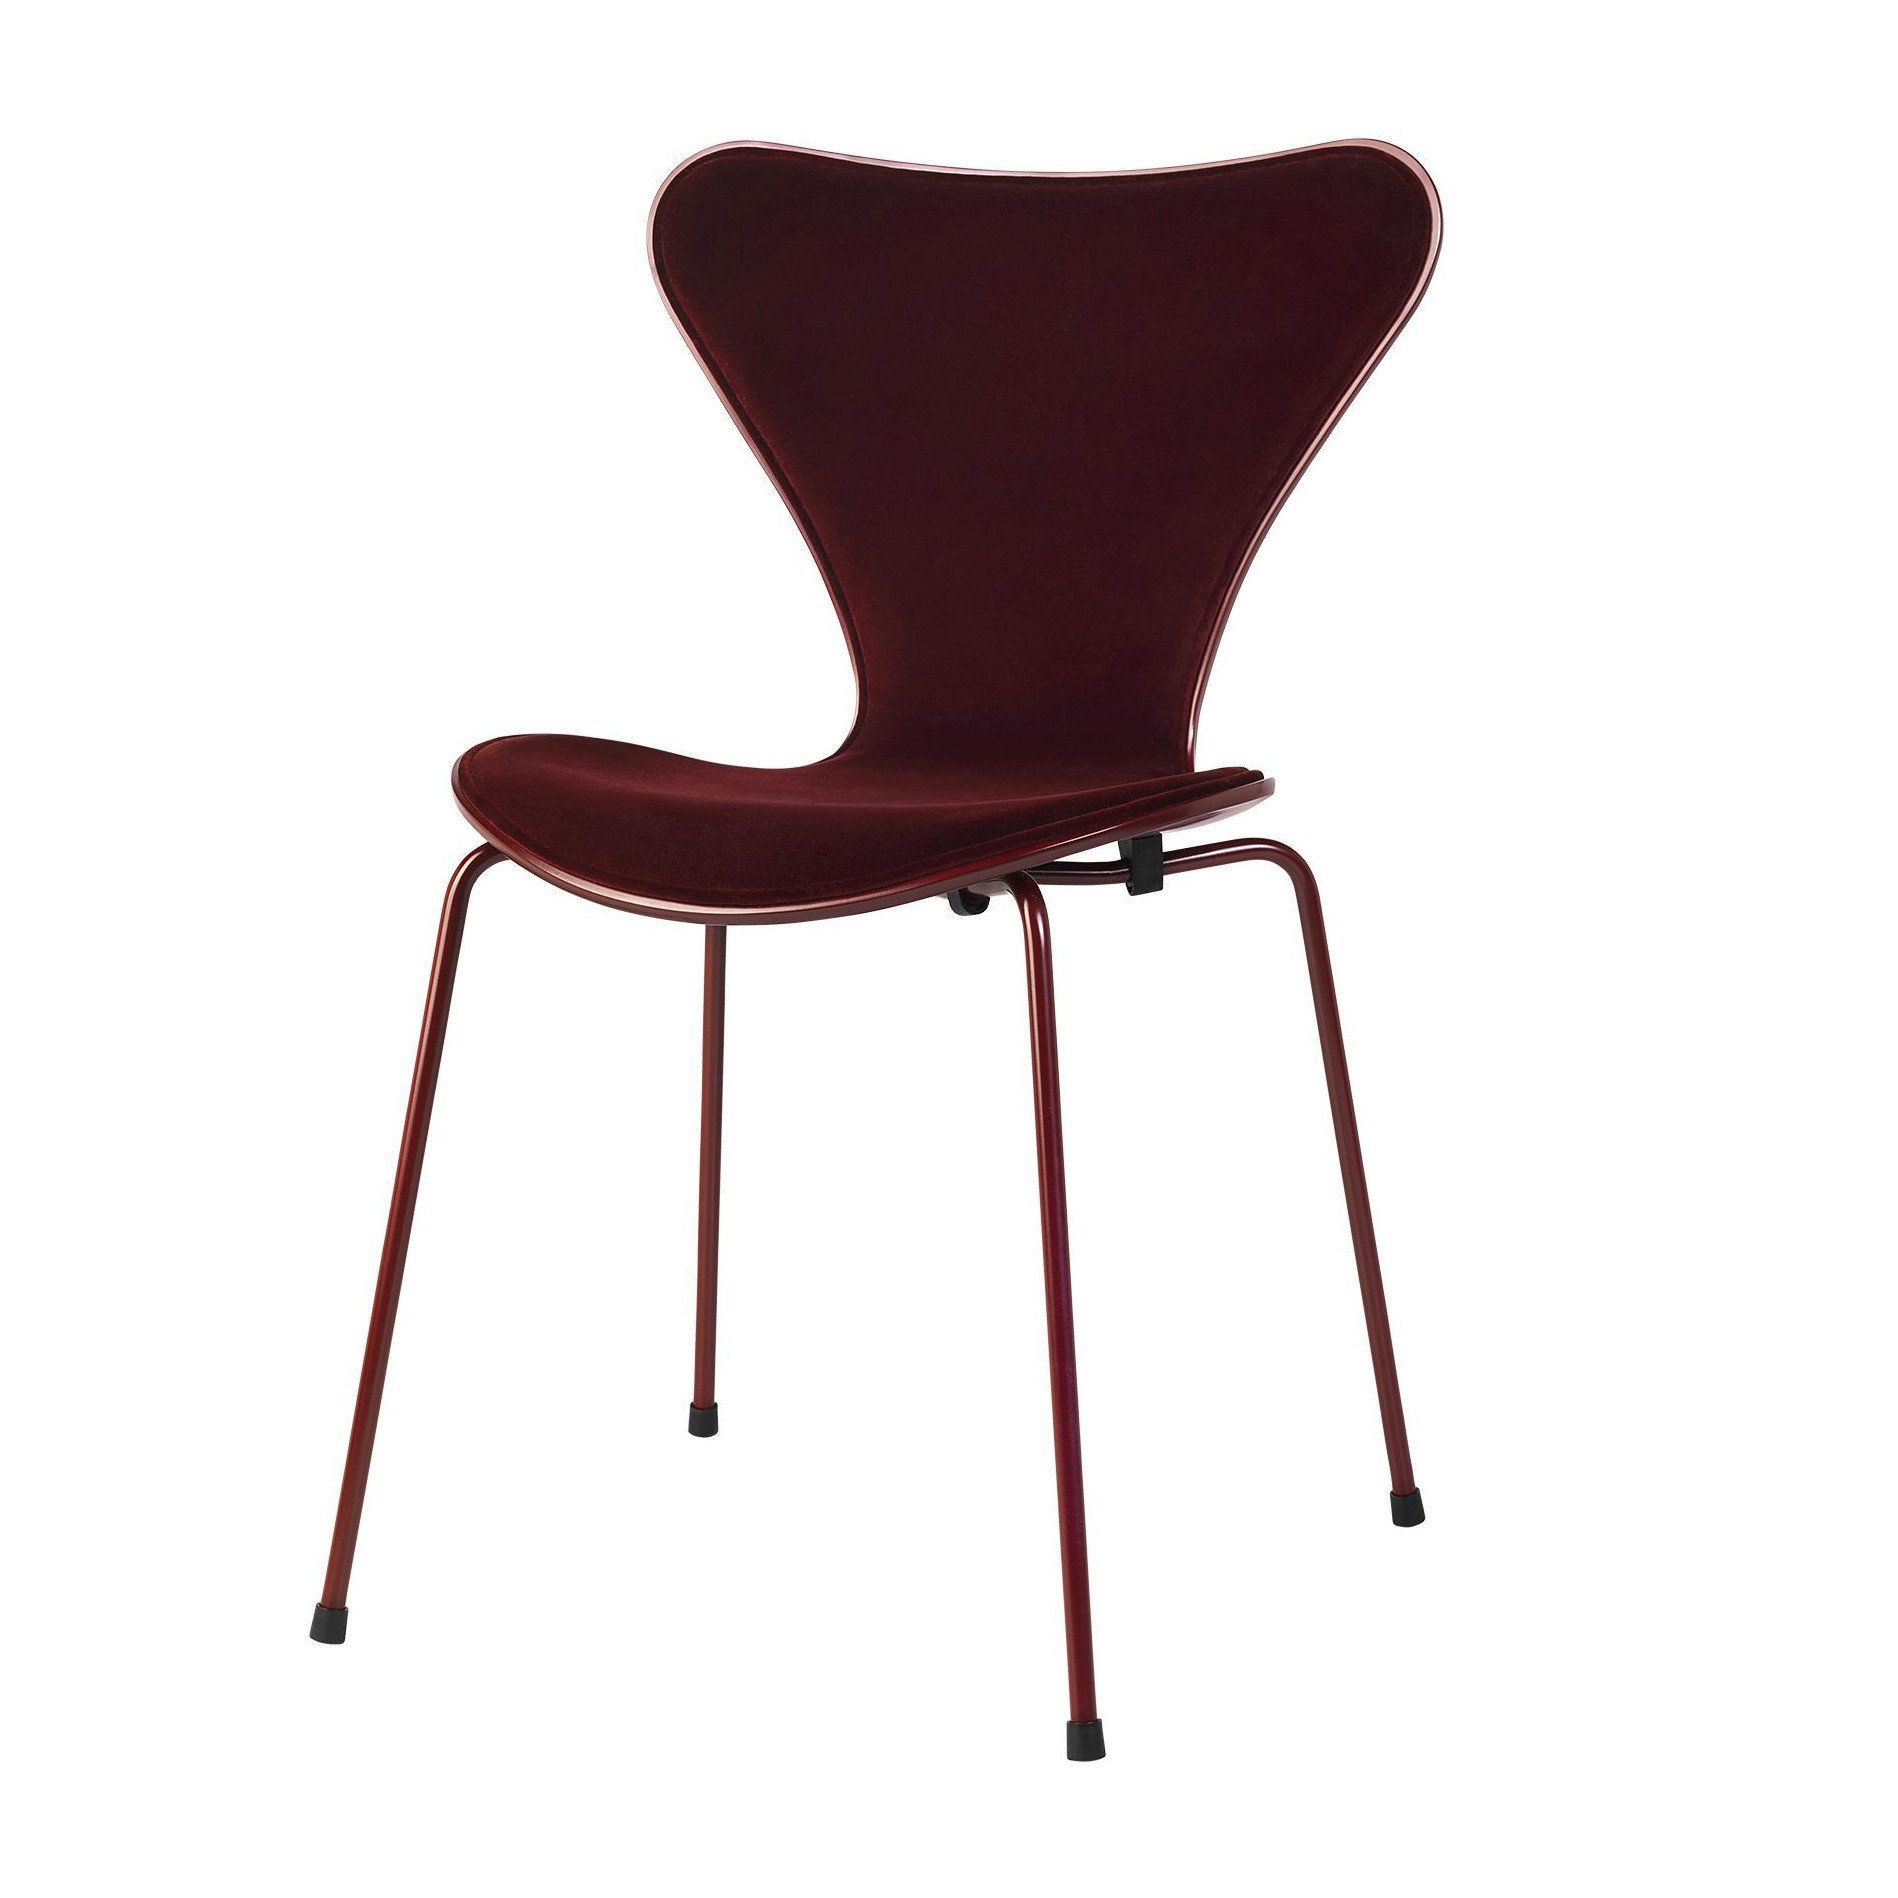 Bon Fritz Hansen   Limited Edition Series 7 Chair Velvet ...